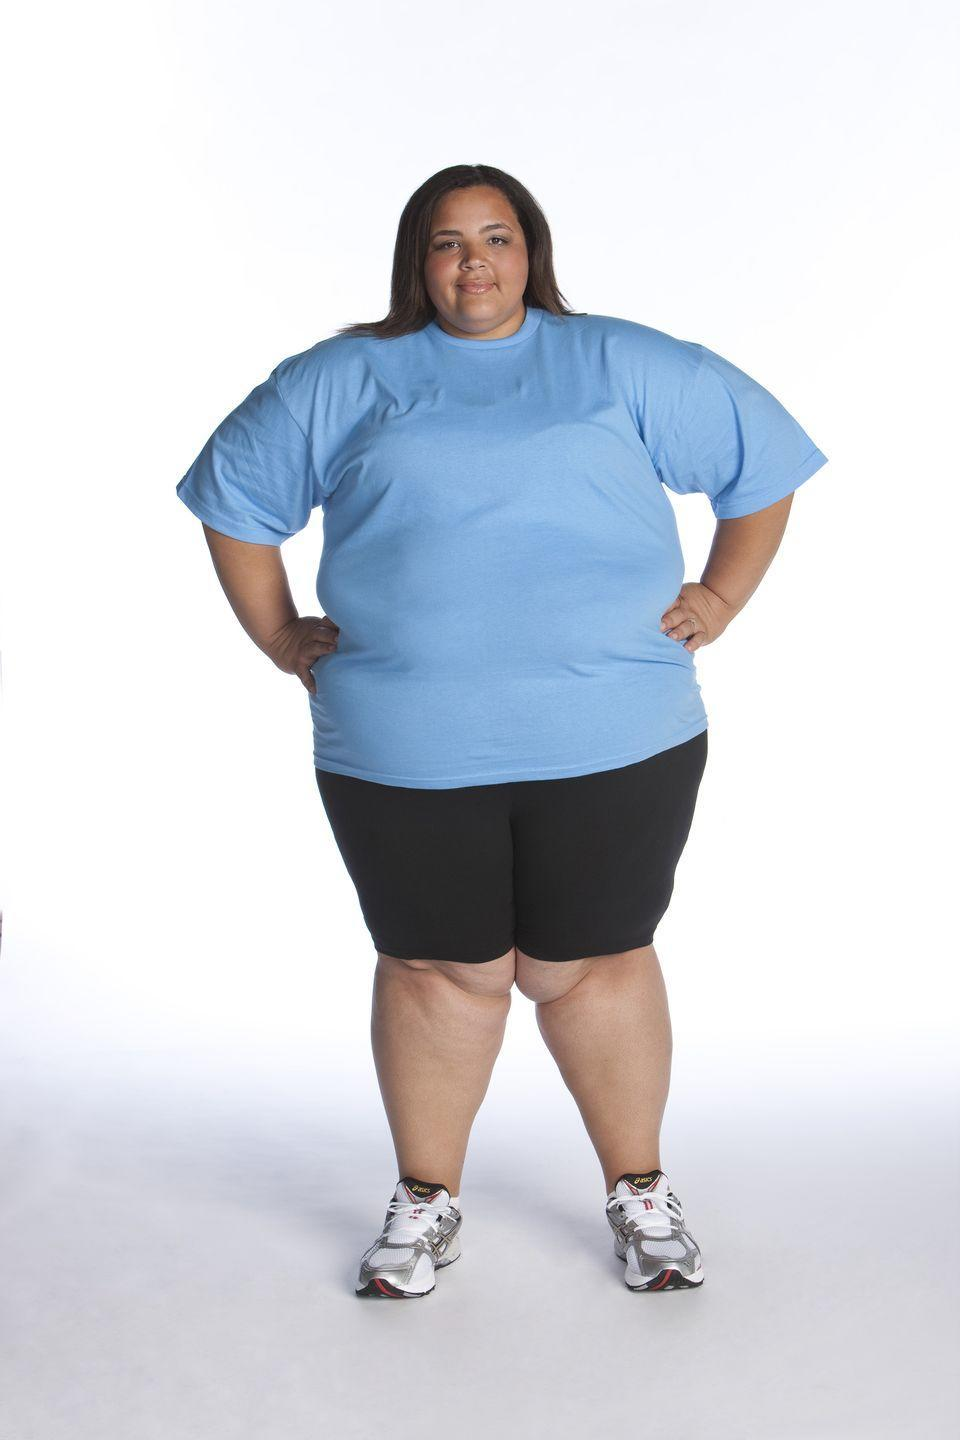 <p>Shay started season 8 as the biggest contestant the show had ever seen. She was 476 pounds at the initial weigh-in.</p>